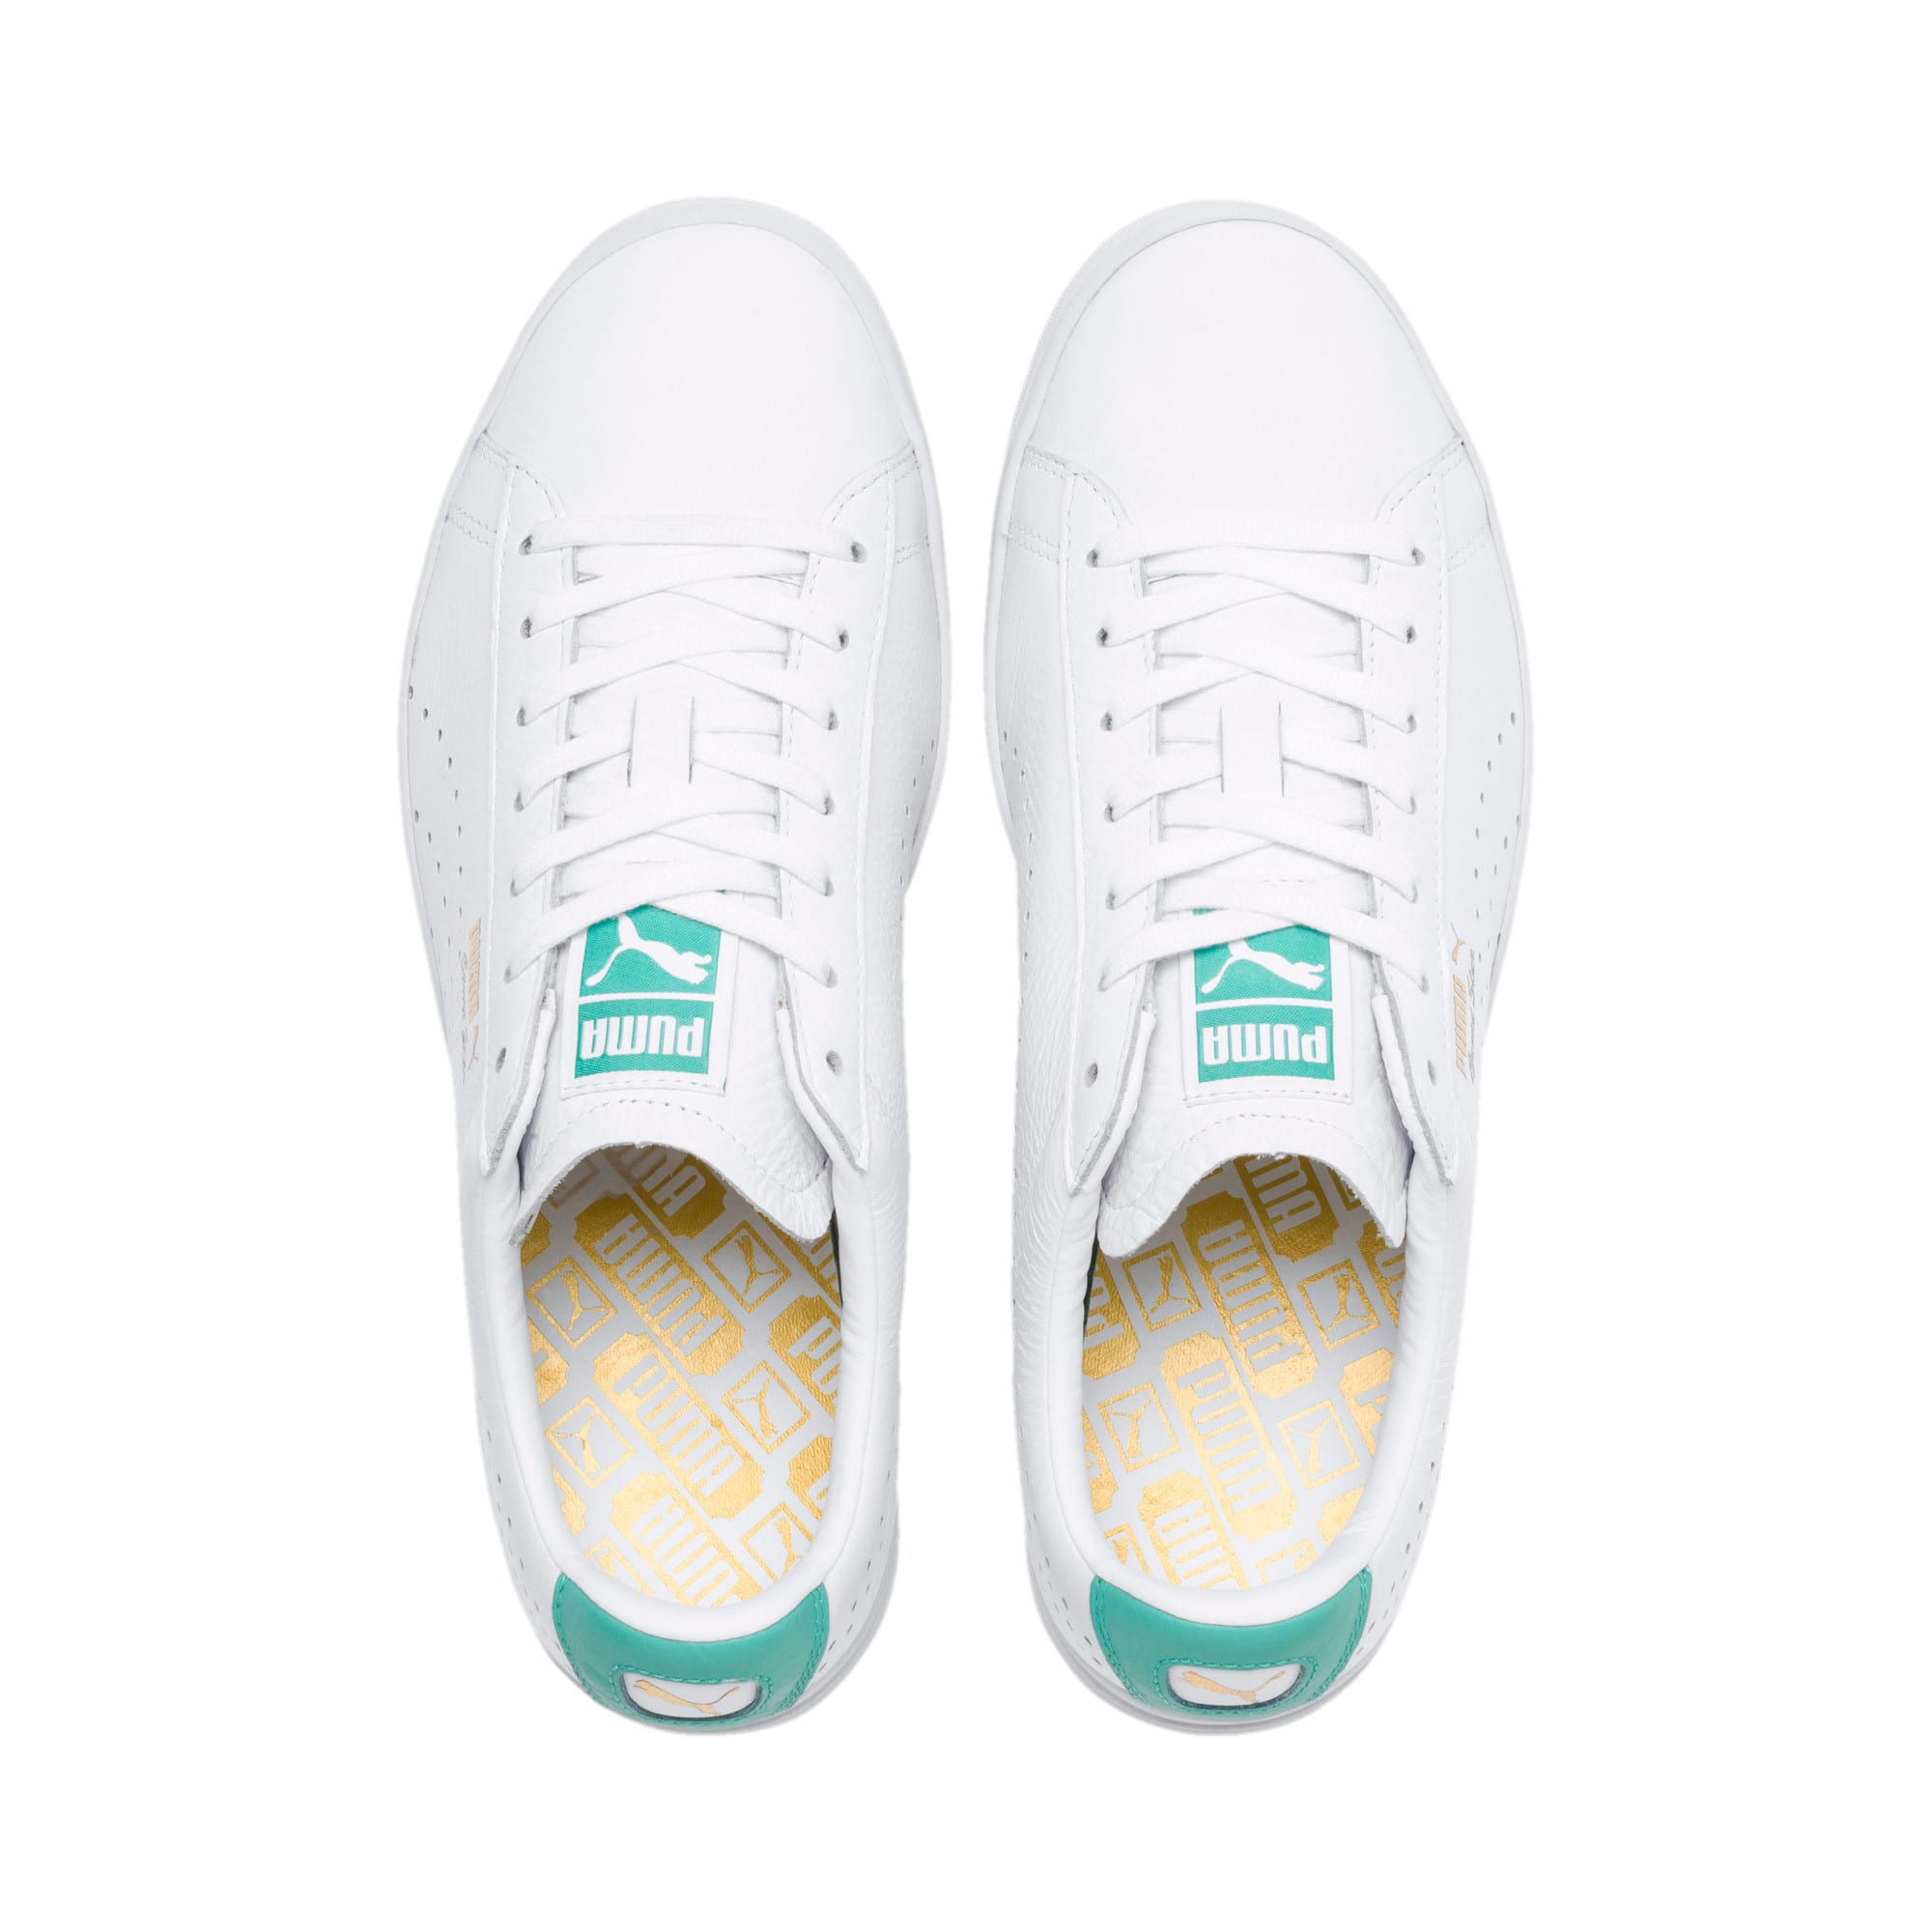 Thumbnail 7 of Court Star Sneakers, Puma White-Blue Turquoise, medium